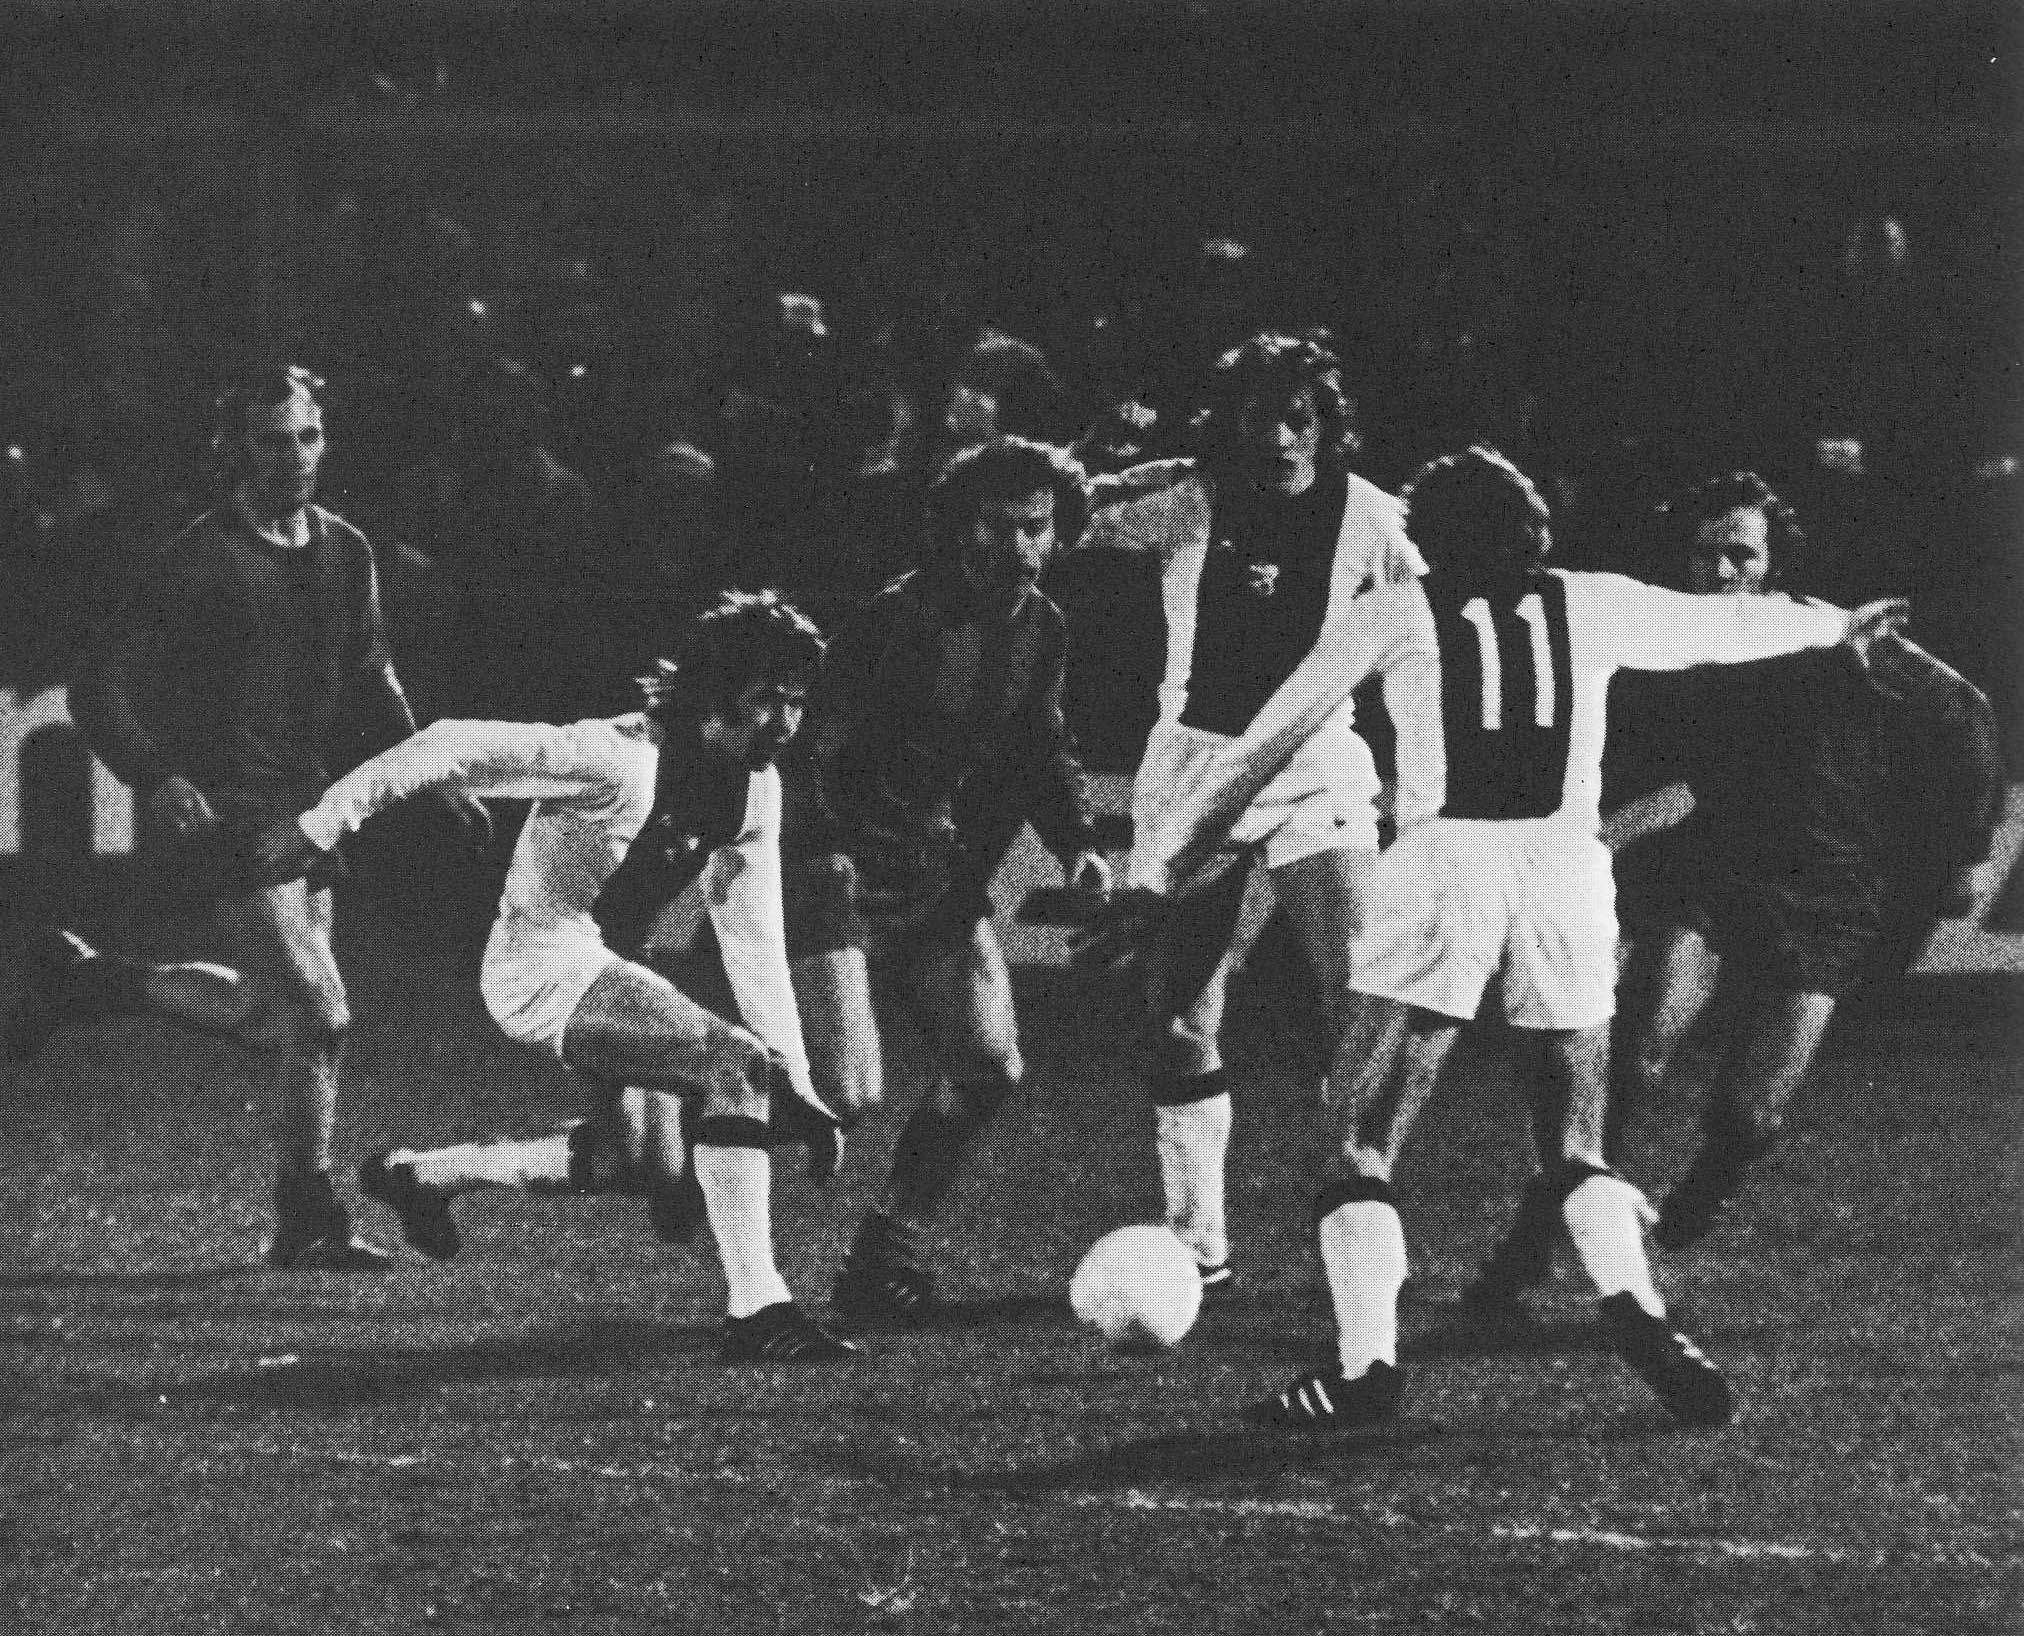 7th March 1973 A who s who of European football as Ajax players